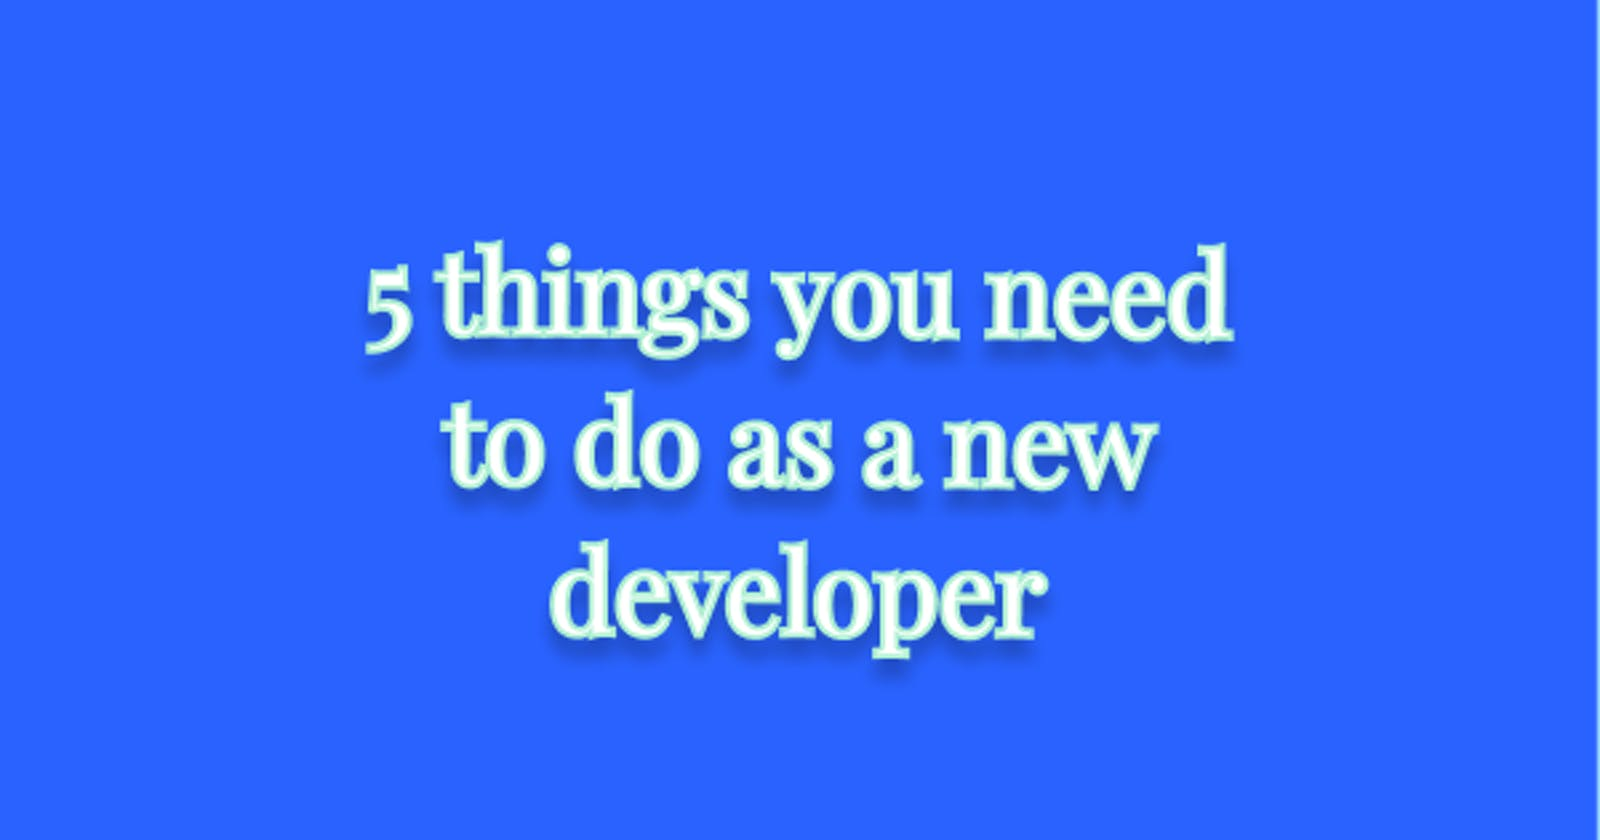 5 things you need to do as a new developer